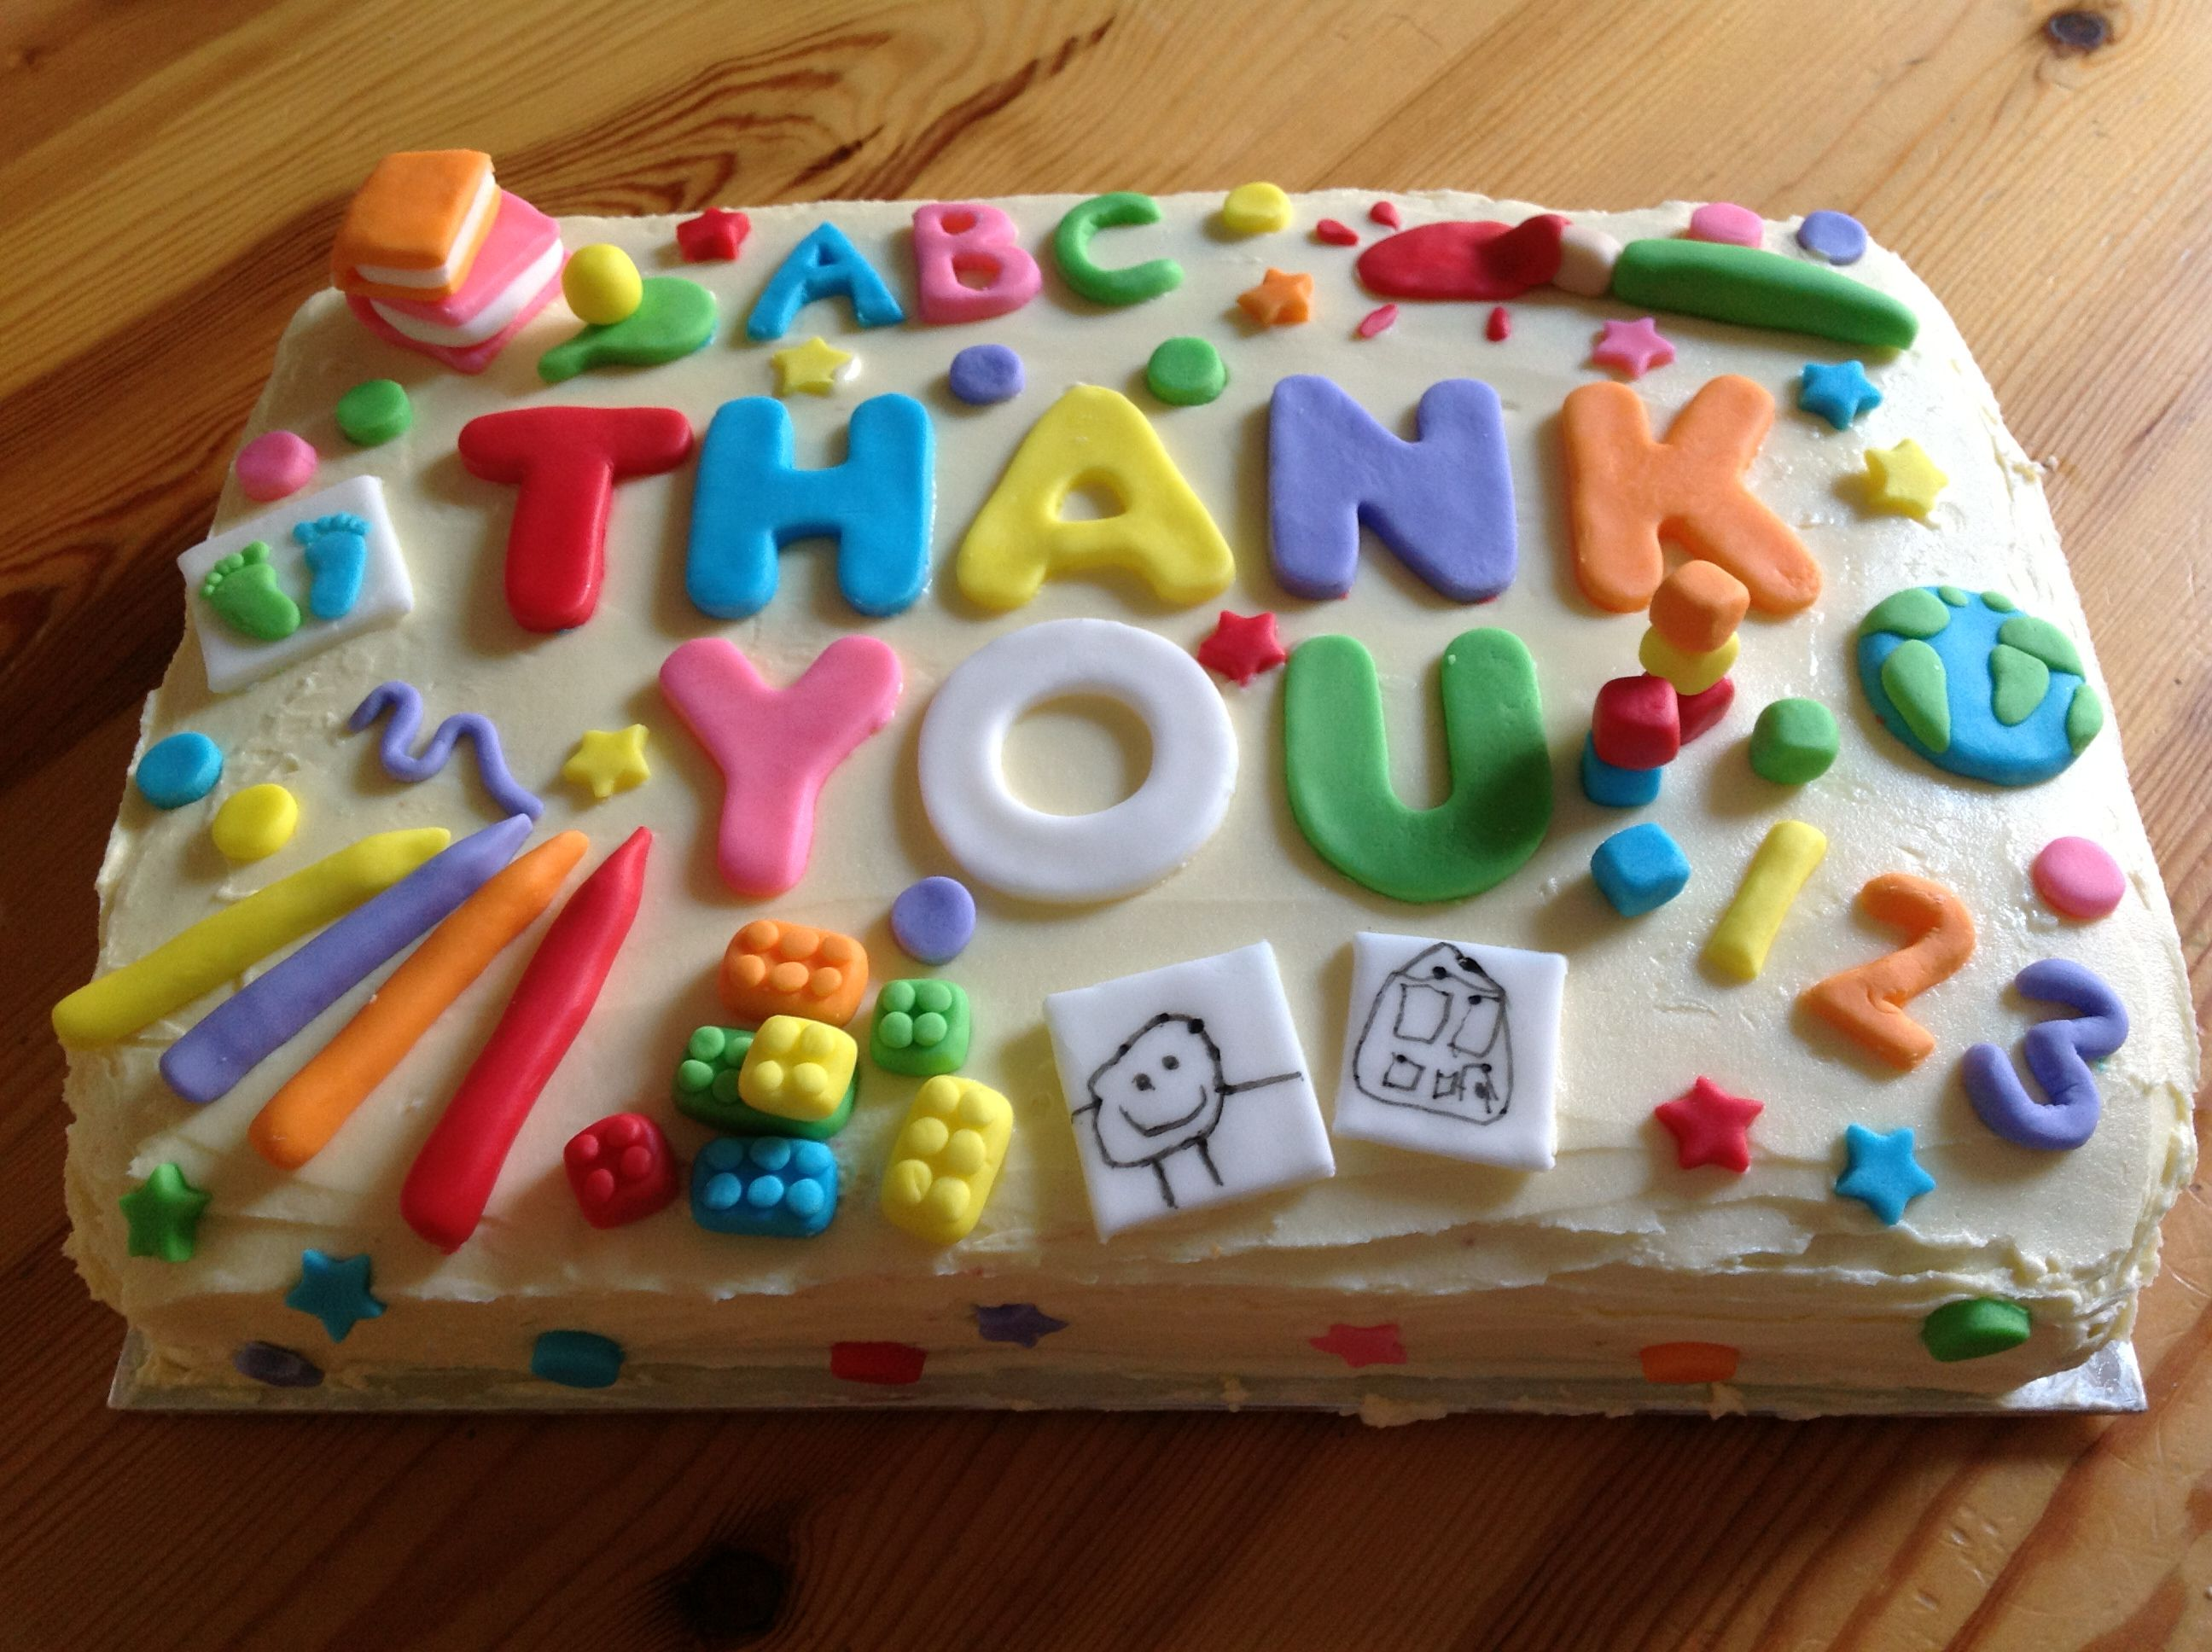 Thank You For Baking: Baking! I Love It!